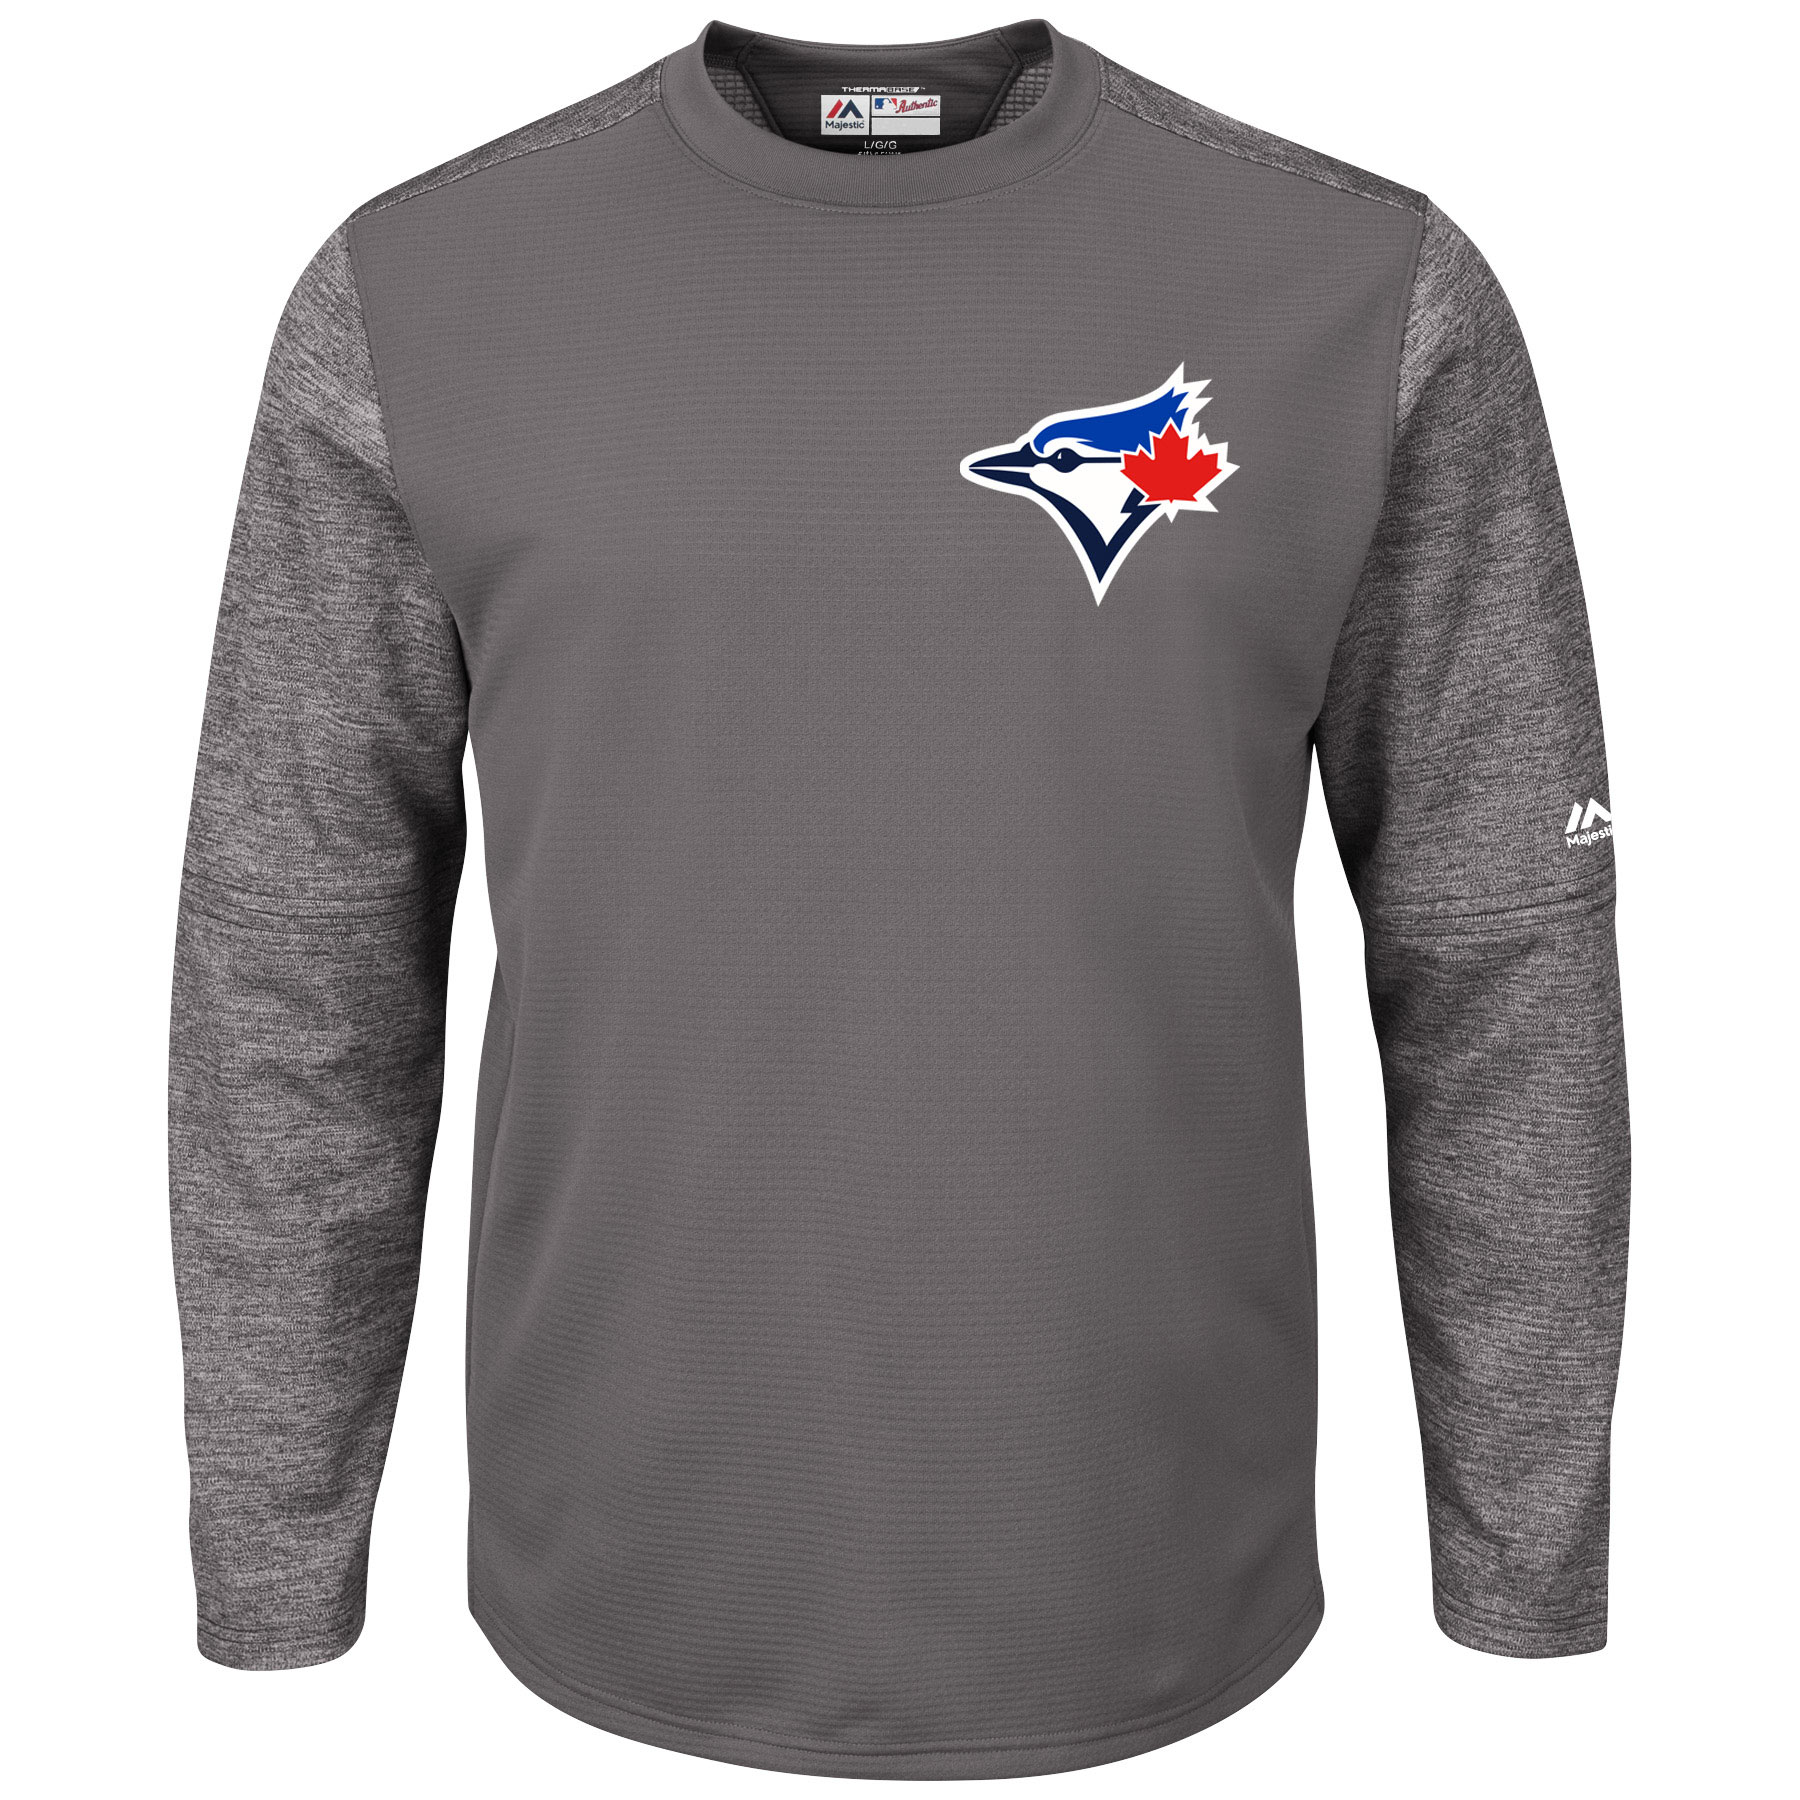 Toronto Blue Jays Majestic Alternate Authentic Tech Fleece Therma Base Pullover Sweatshirt - Graphite